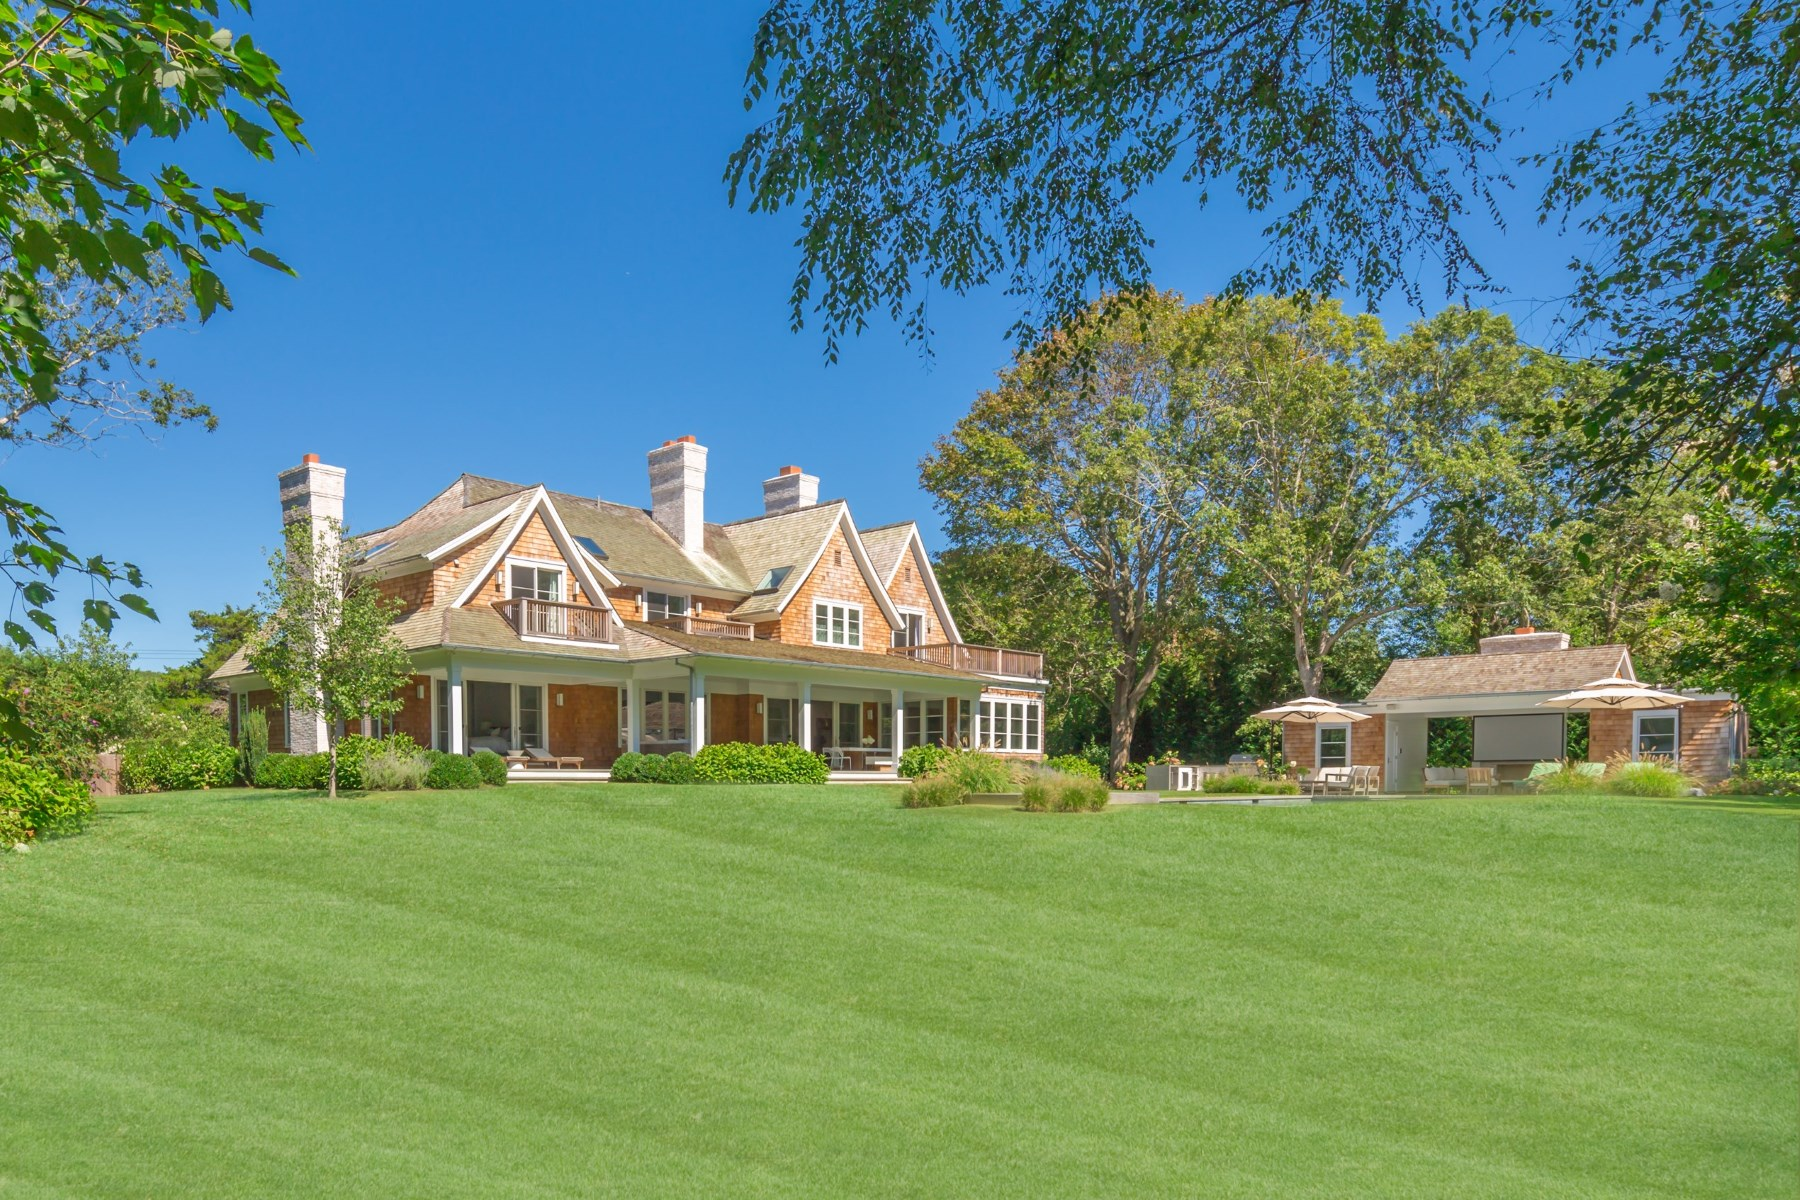 Single Family Home for Sale at Georgica Designer's Own New Construction 200 Georgica Road East Hampton, New York 11937 United States